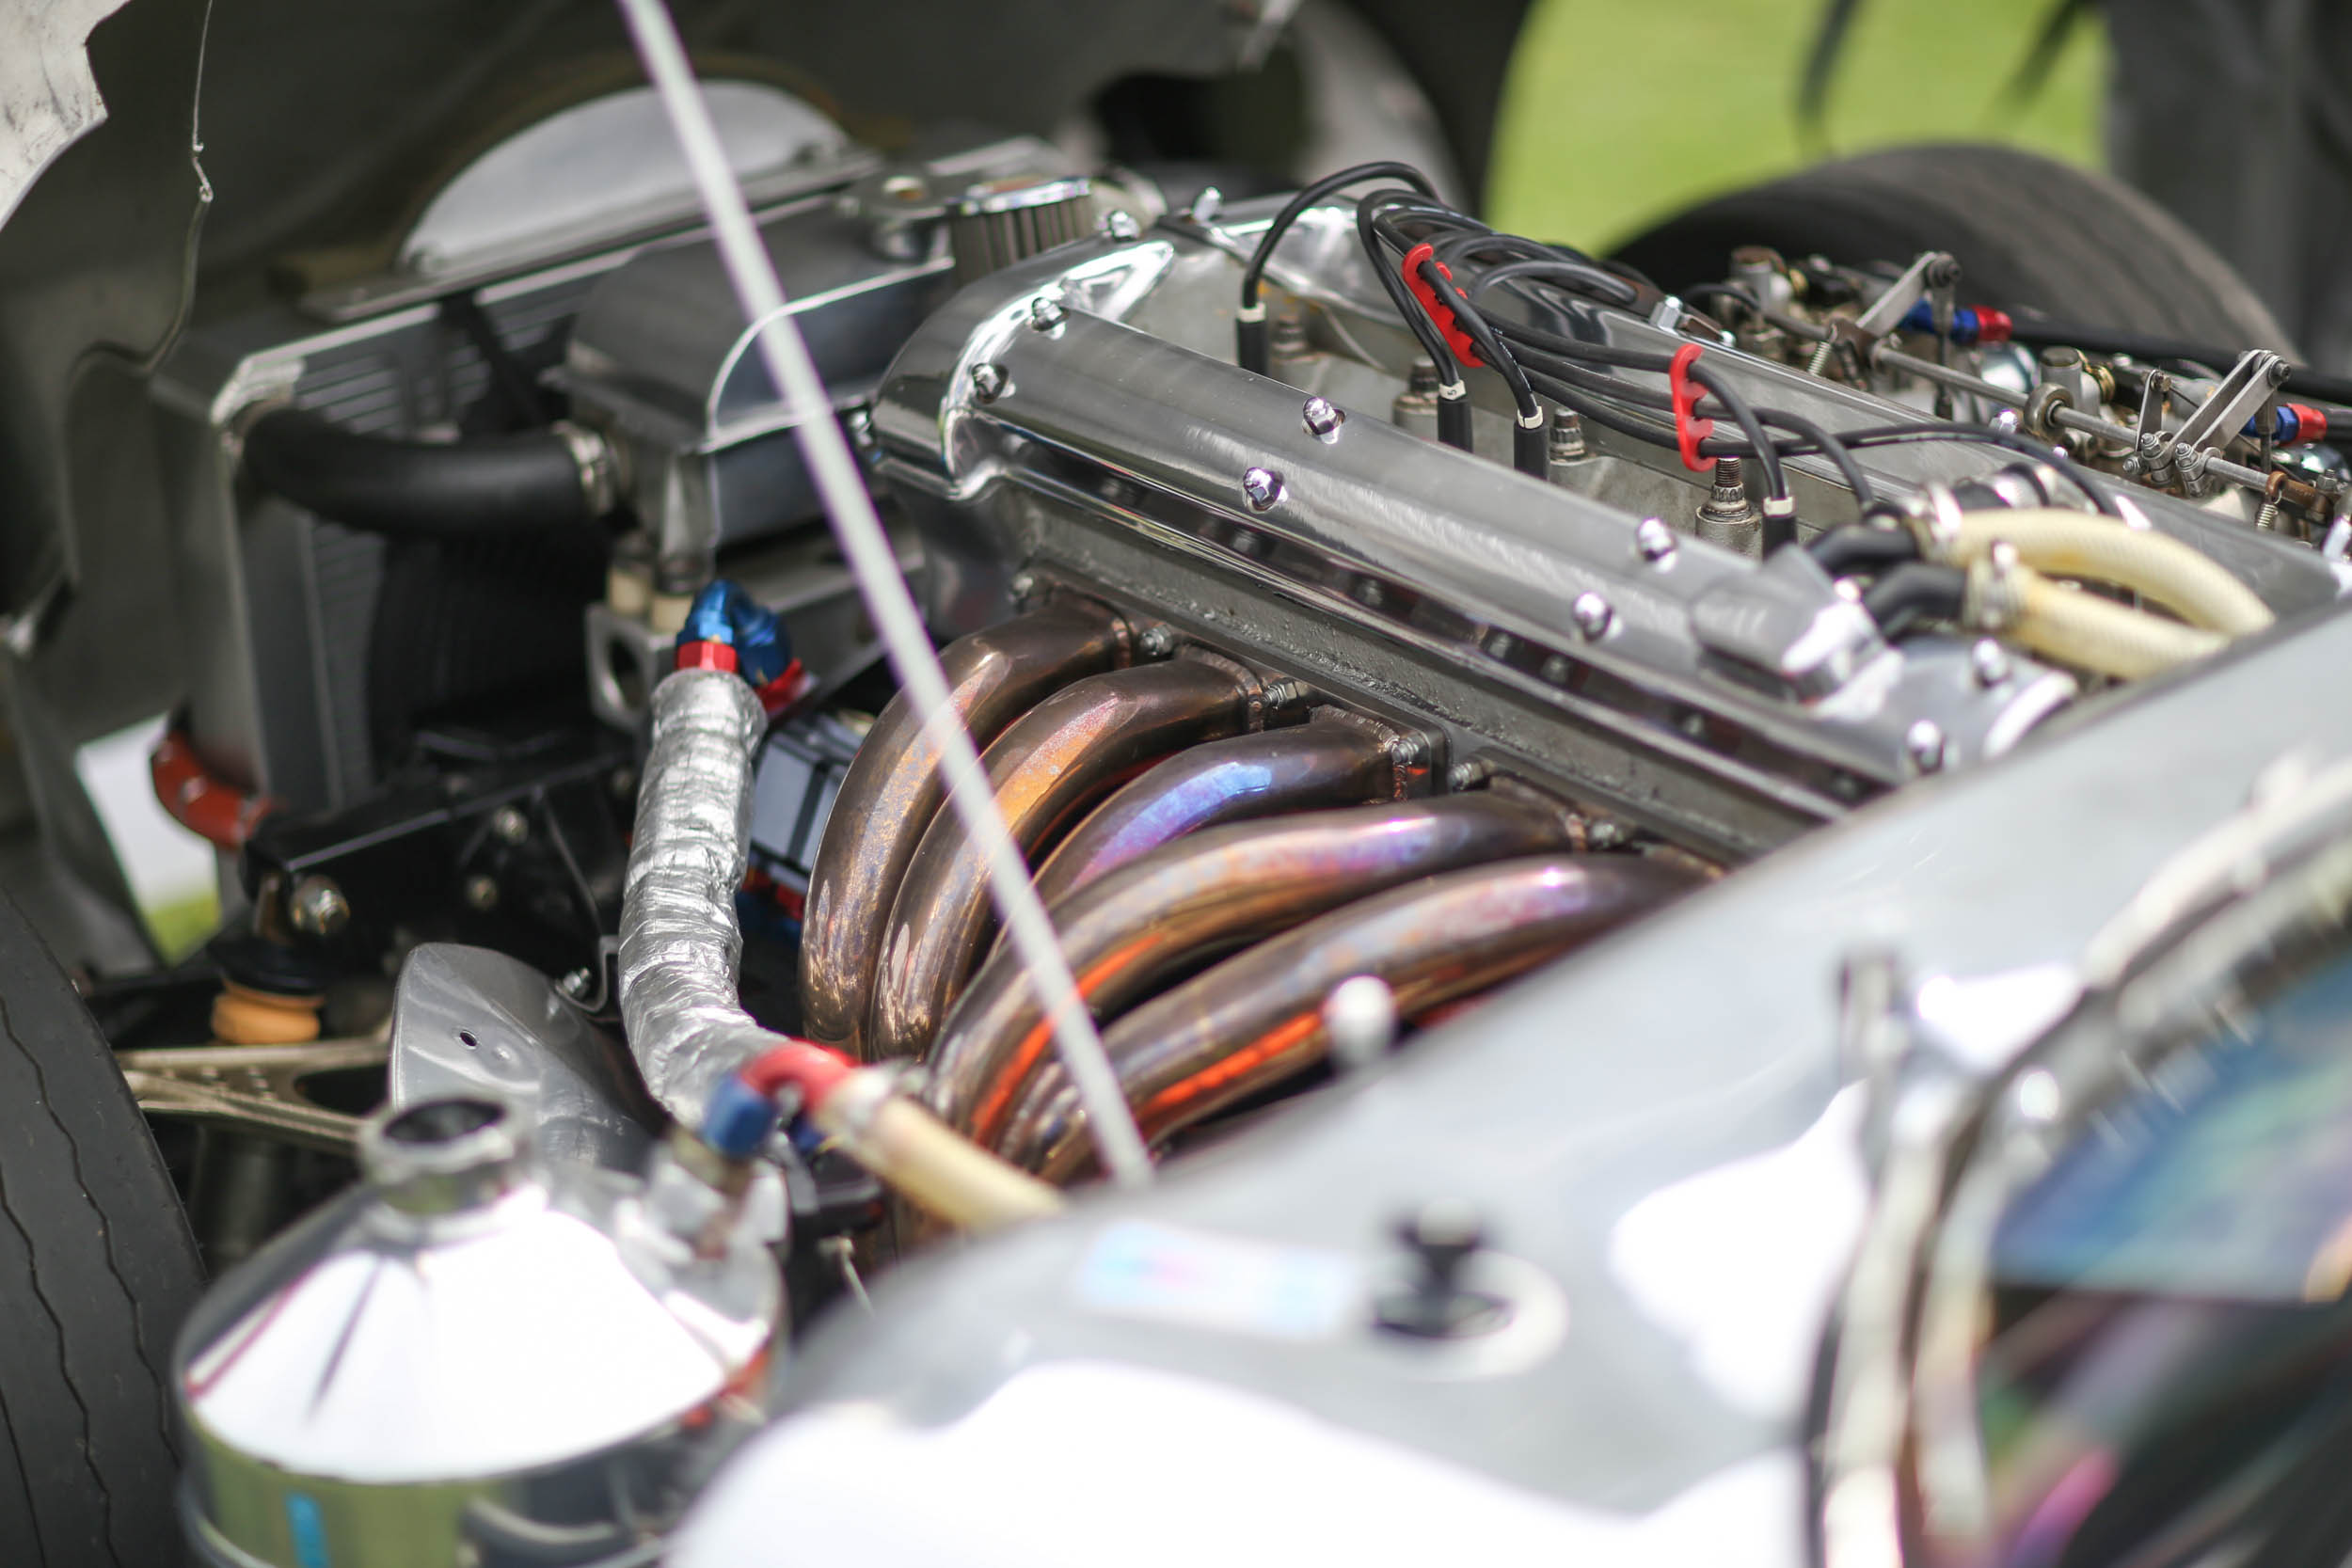 We found this beautiful inline-six under the long hood of a Jaguar E-type.